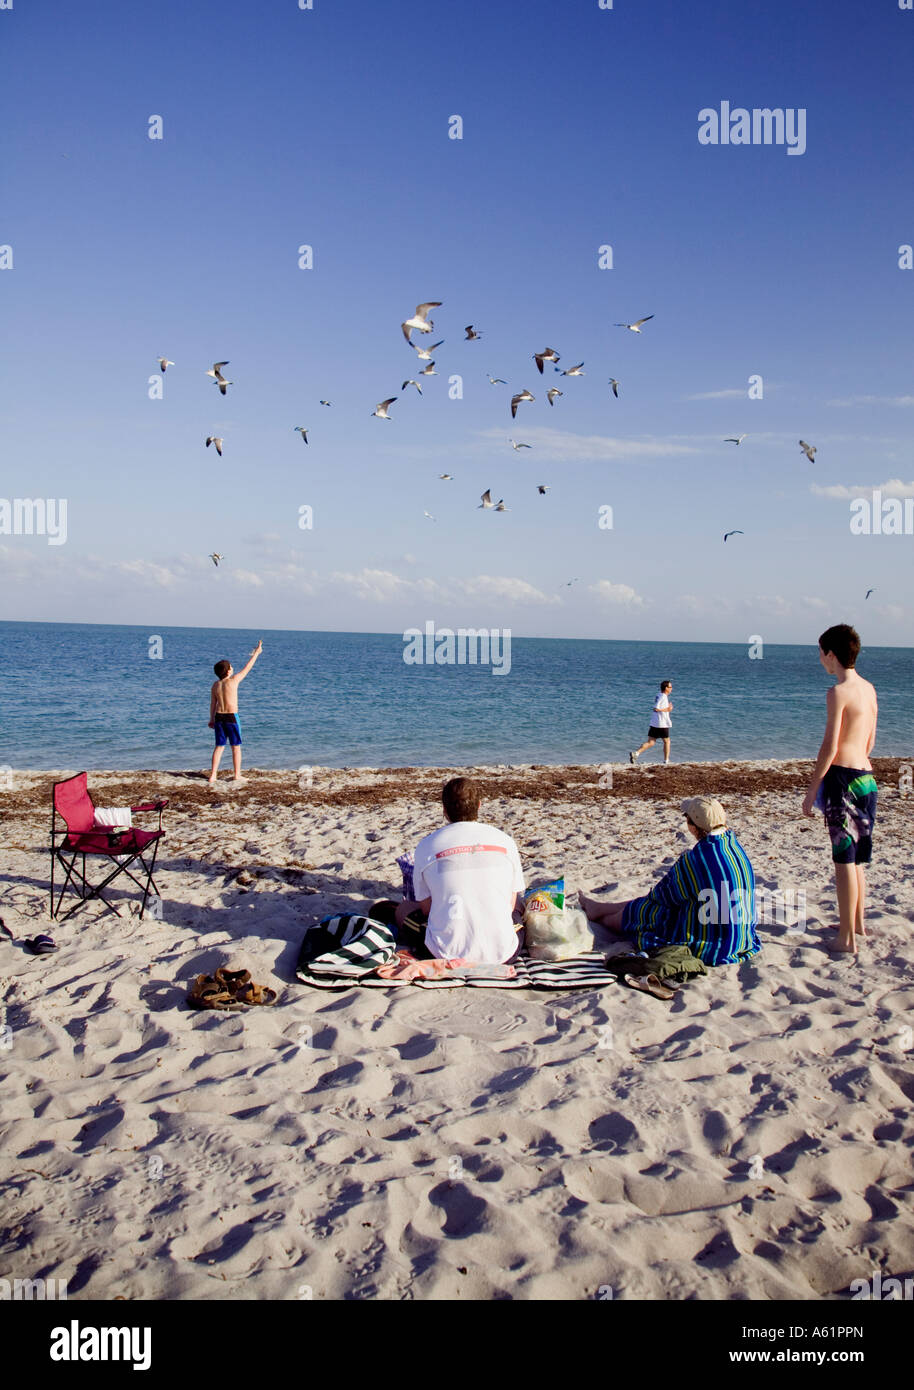 USA Florida Miami Beach with Hotels and sun worshipers Seagull and people Miami Beach Florida USA - Stock Image